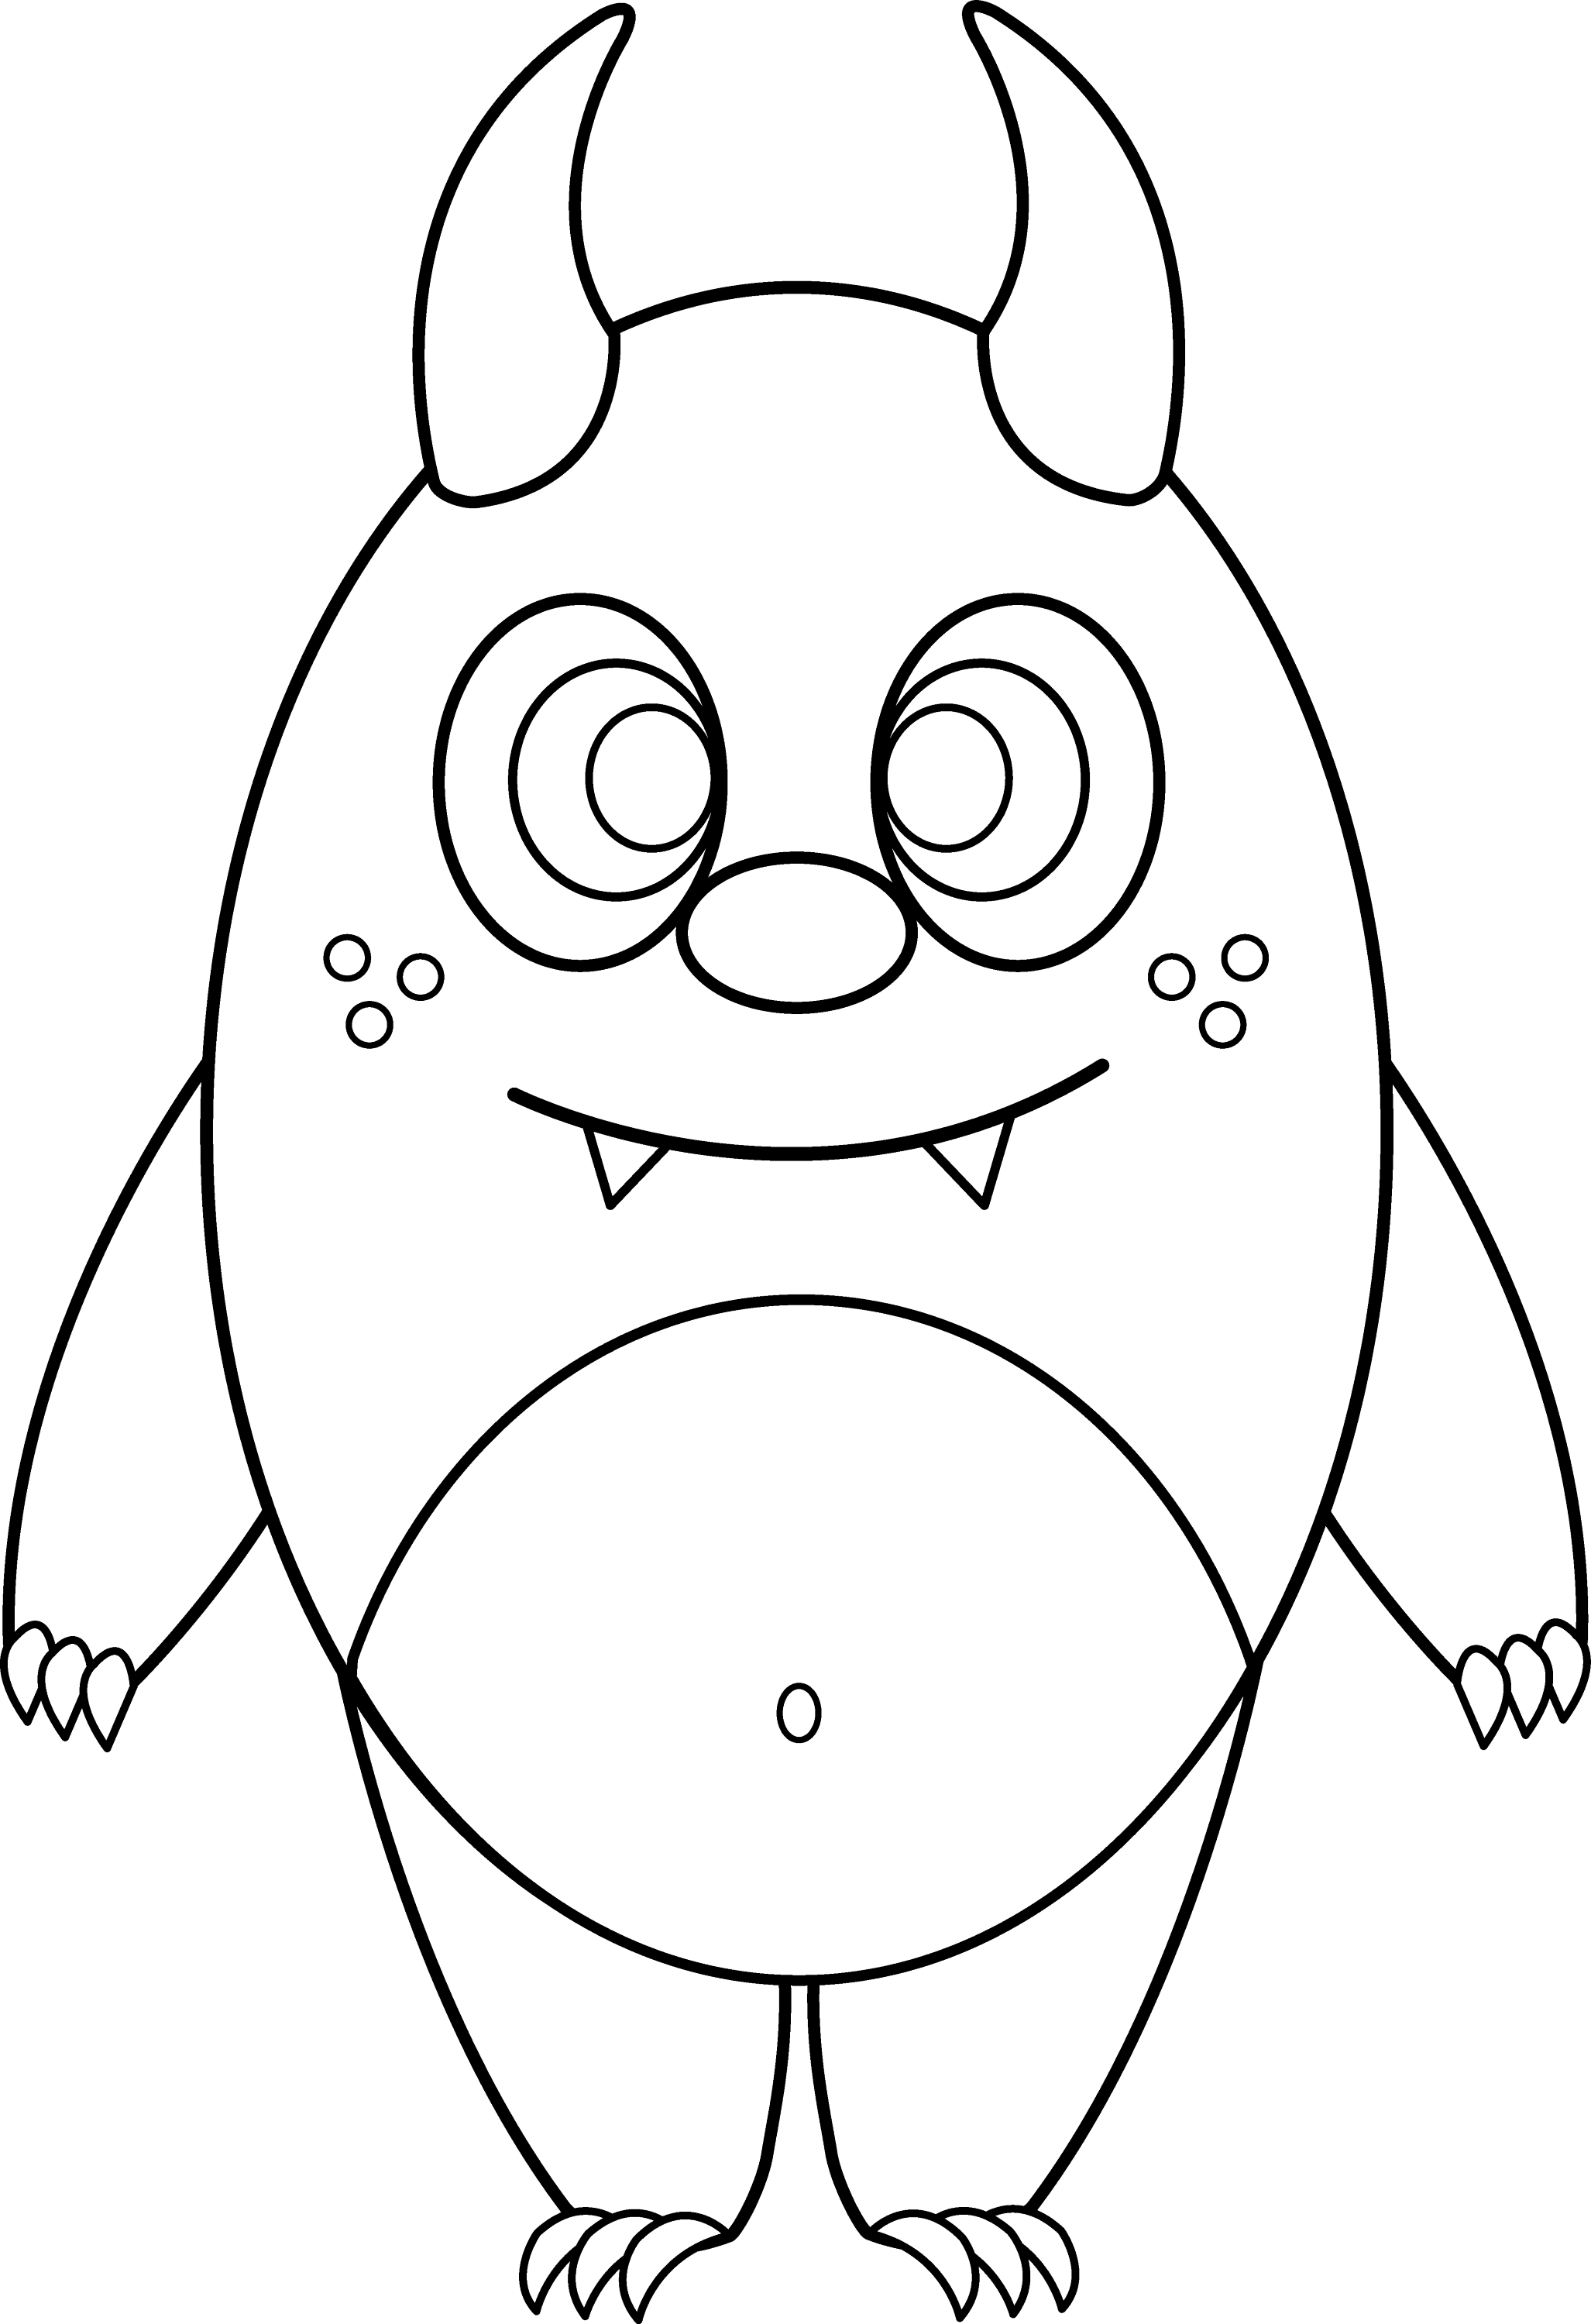 cute monster coloring pages - photo#34